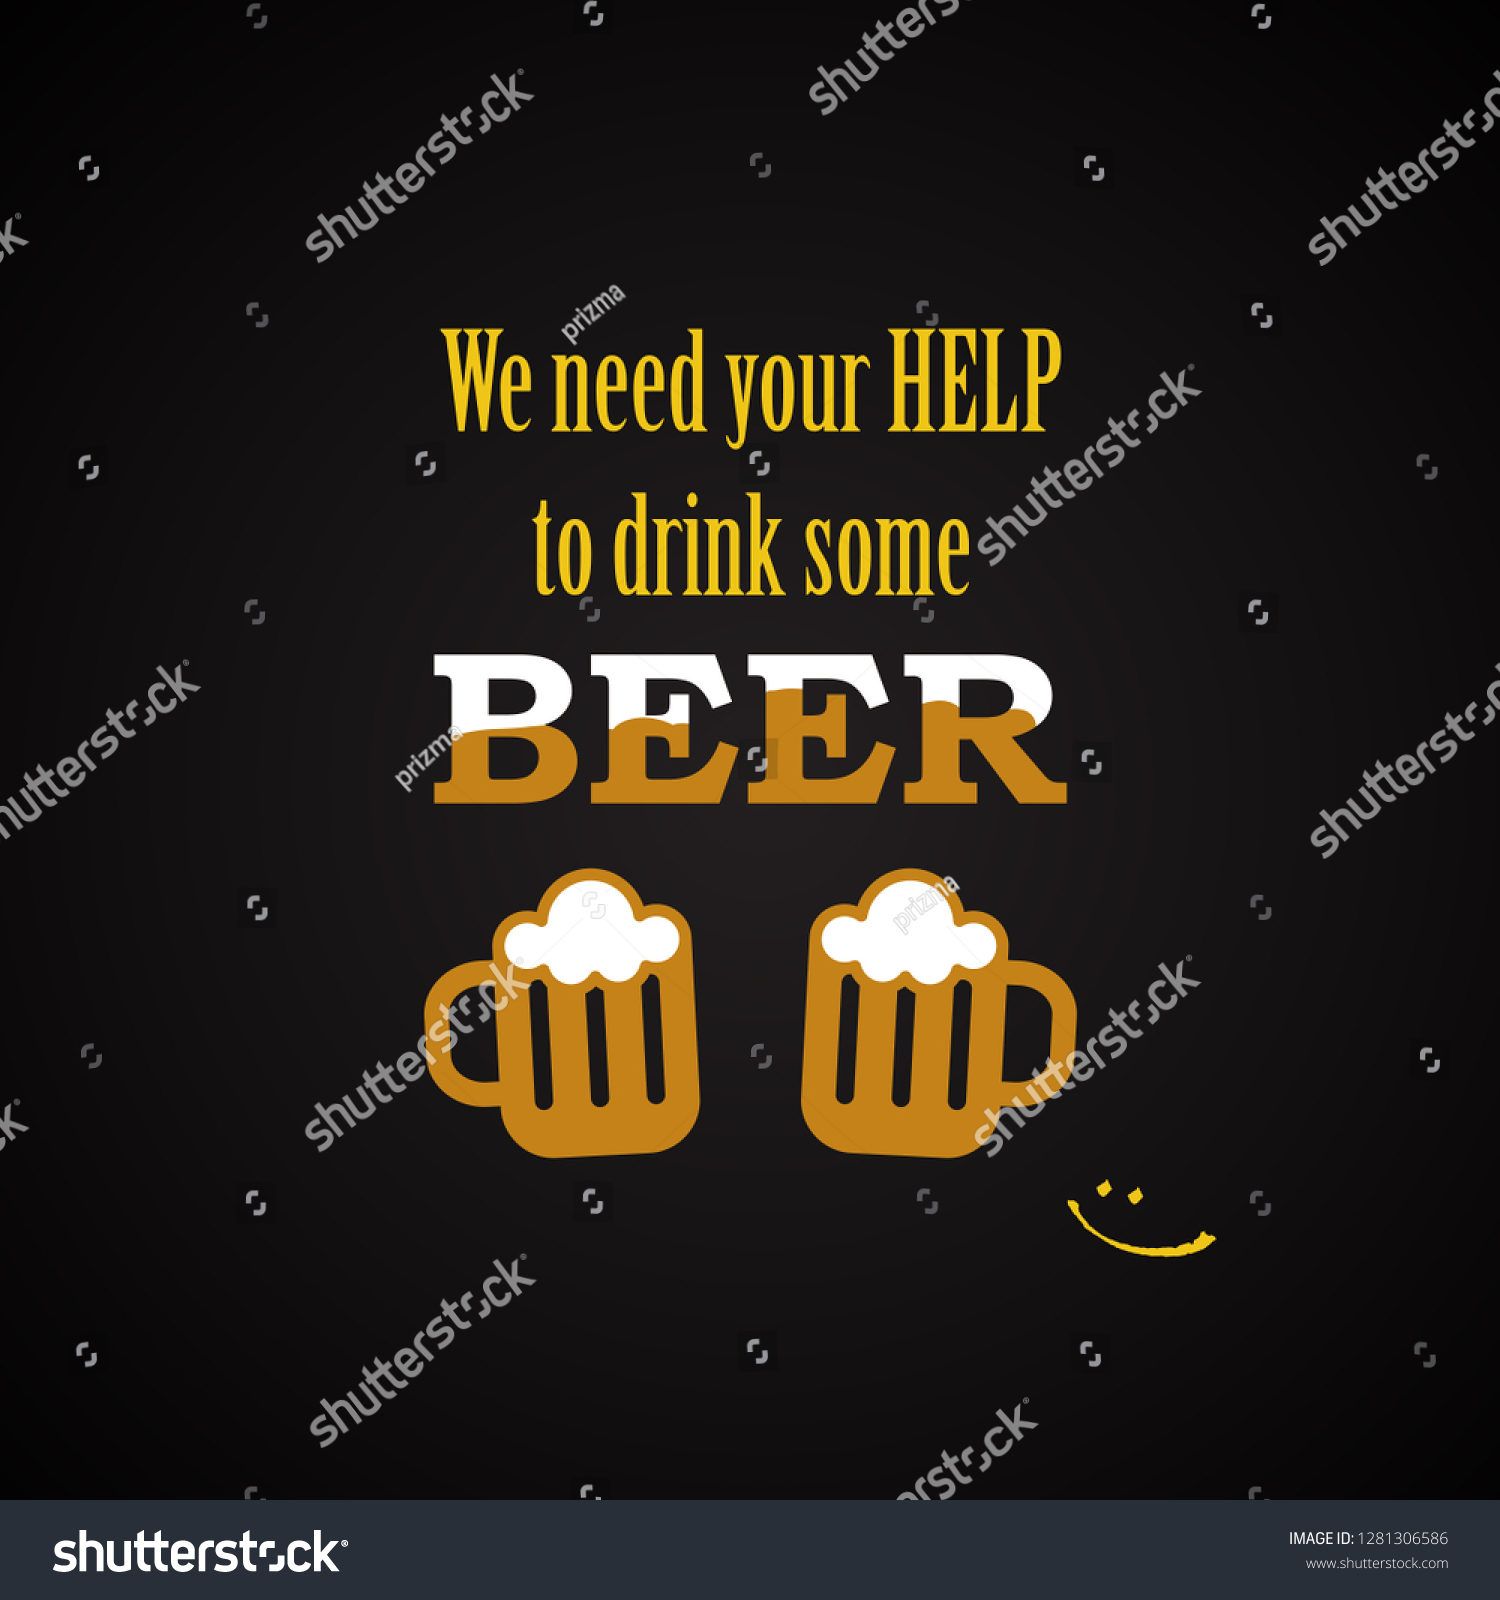 Beer Quotes We Need Your Help Stock Vector (Royalty Free ...